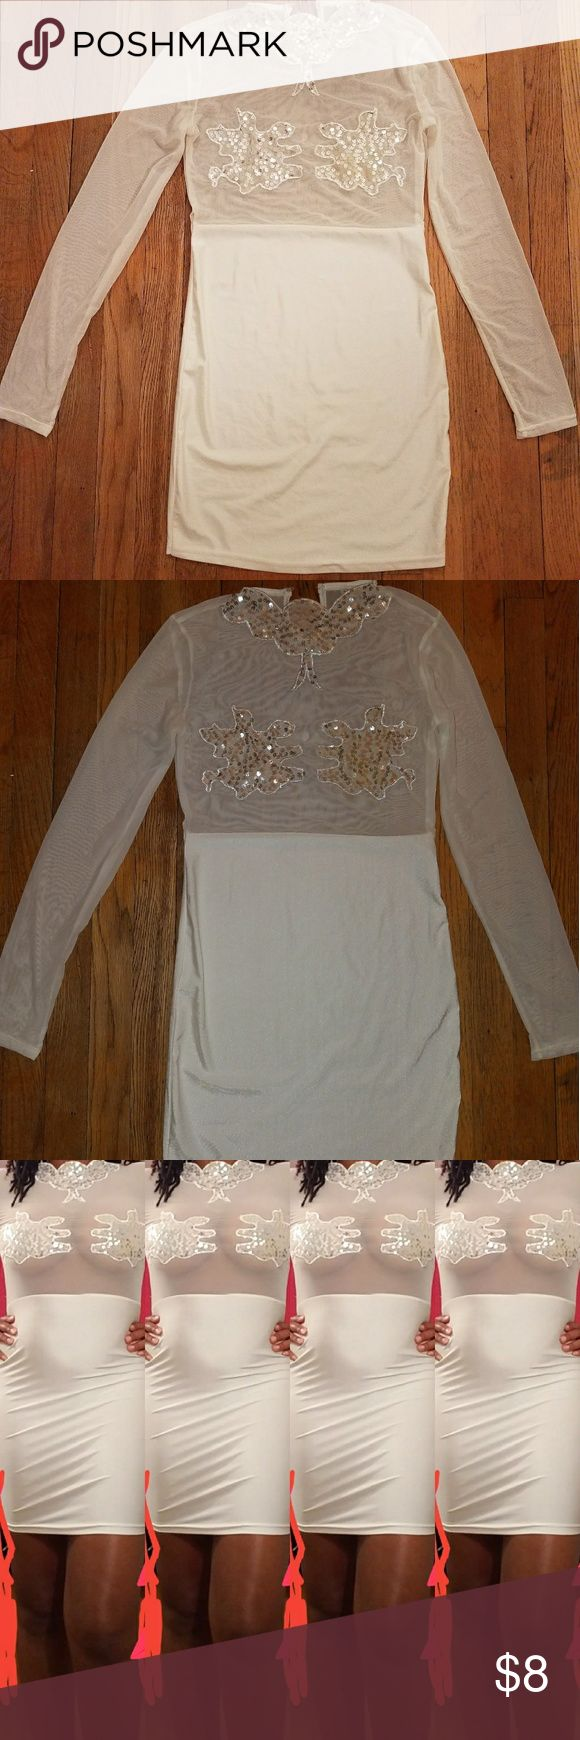 Used white mesh dress Used white mesh dress..size large..it has sequins in the neck area and around the chest area..you will need to add a button on the closing part in the back Dresses